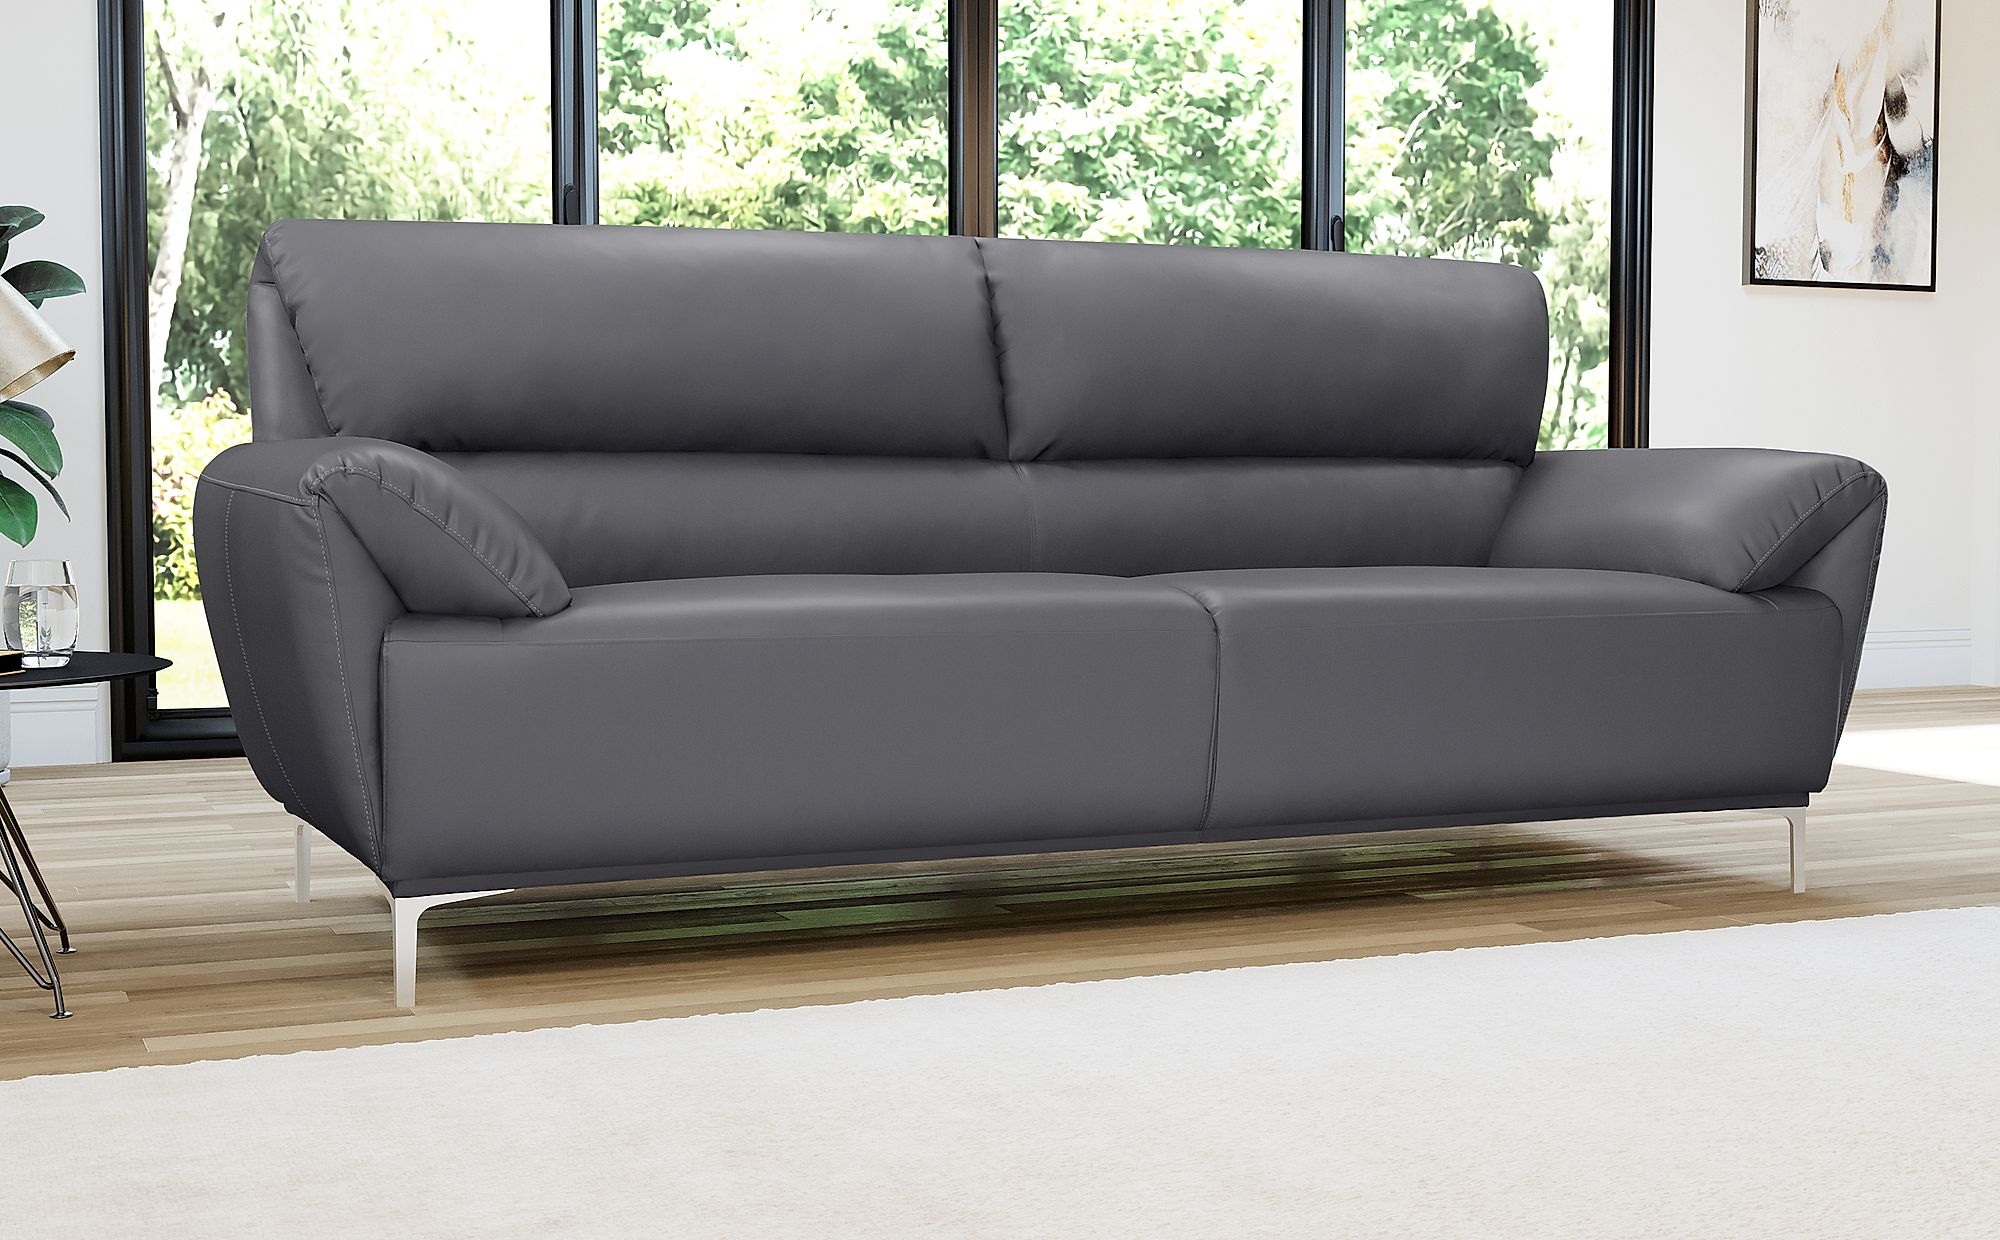 Enzo Grey Leather Sofa 3 Seater Only £499.99 | Furniture Choice